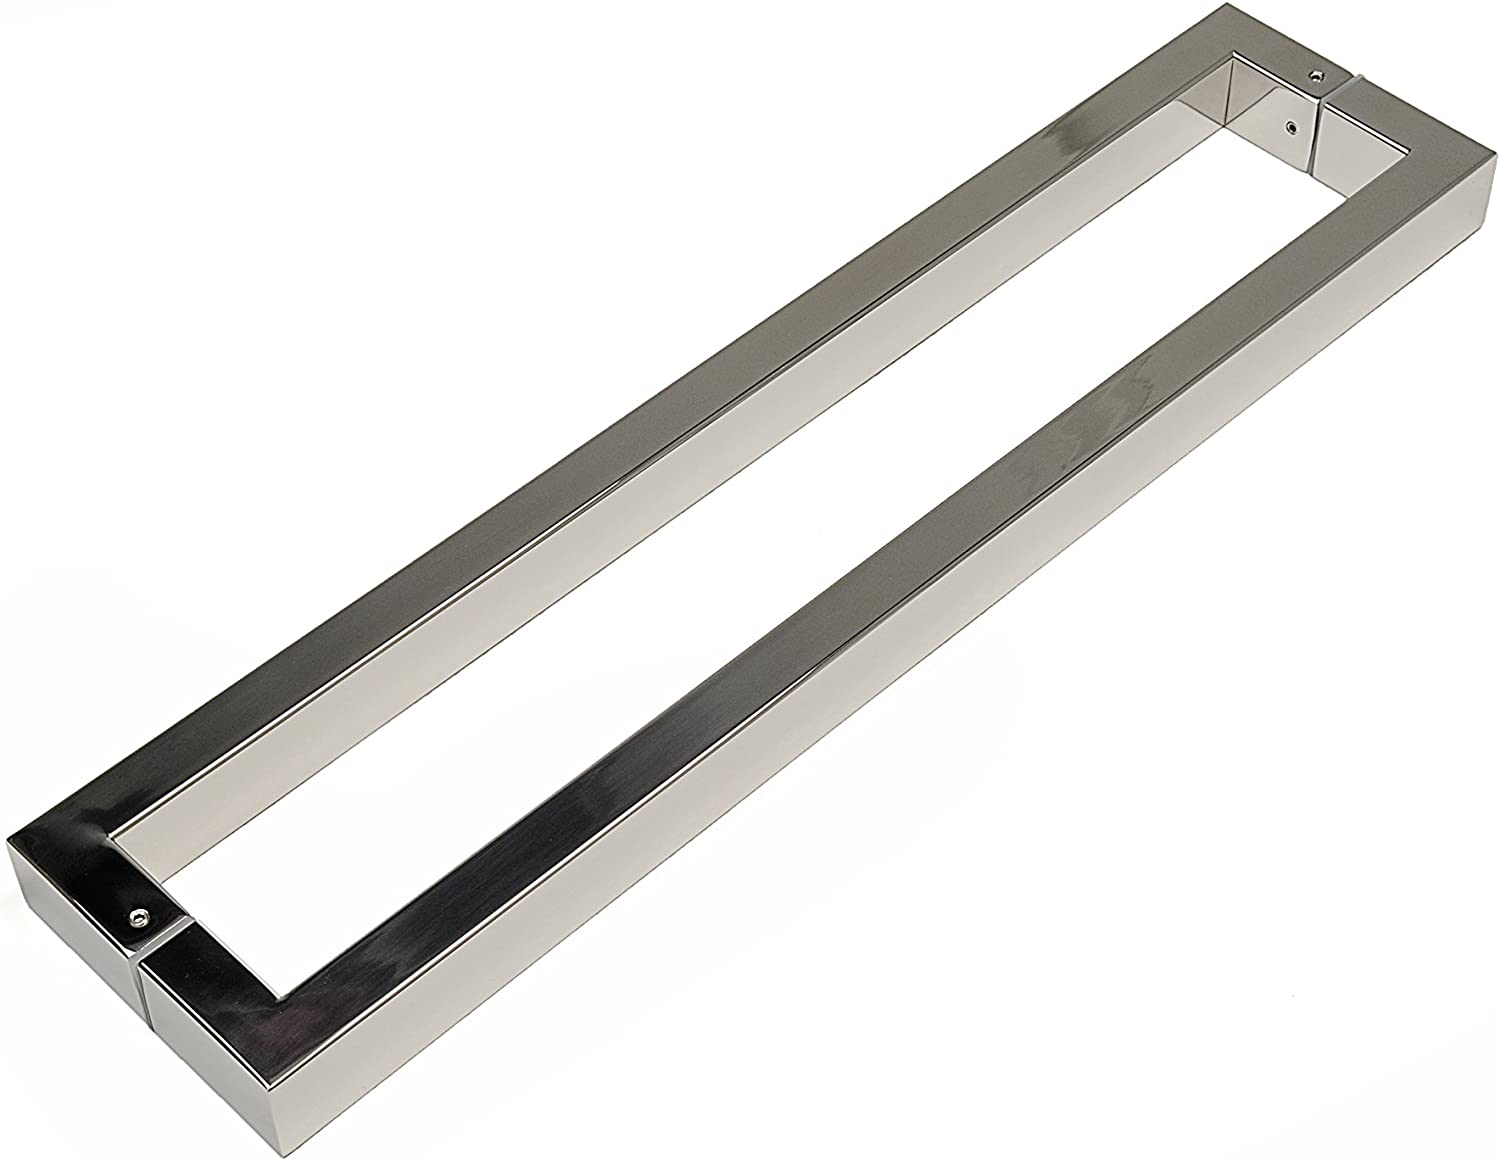 STRONGAR Modern /& Contemporary//Commercial//Residential//Rectangular//Square//812mm//32 inches Push-Pull Stainless-Steel Door Handle Polished Chrome Finish